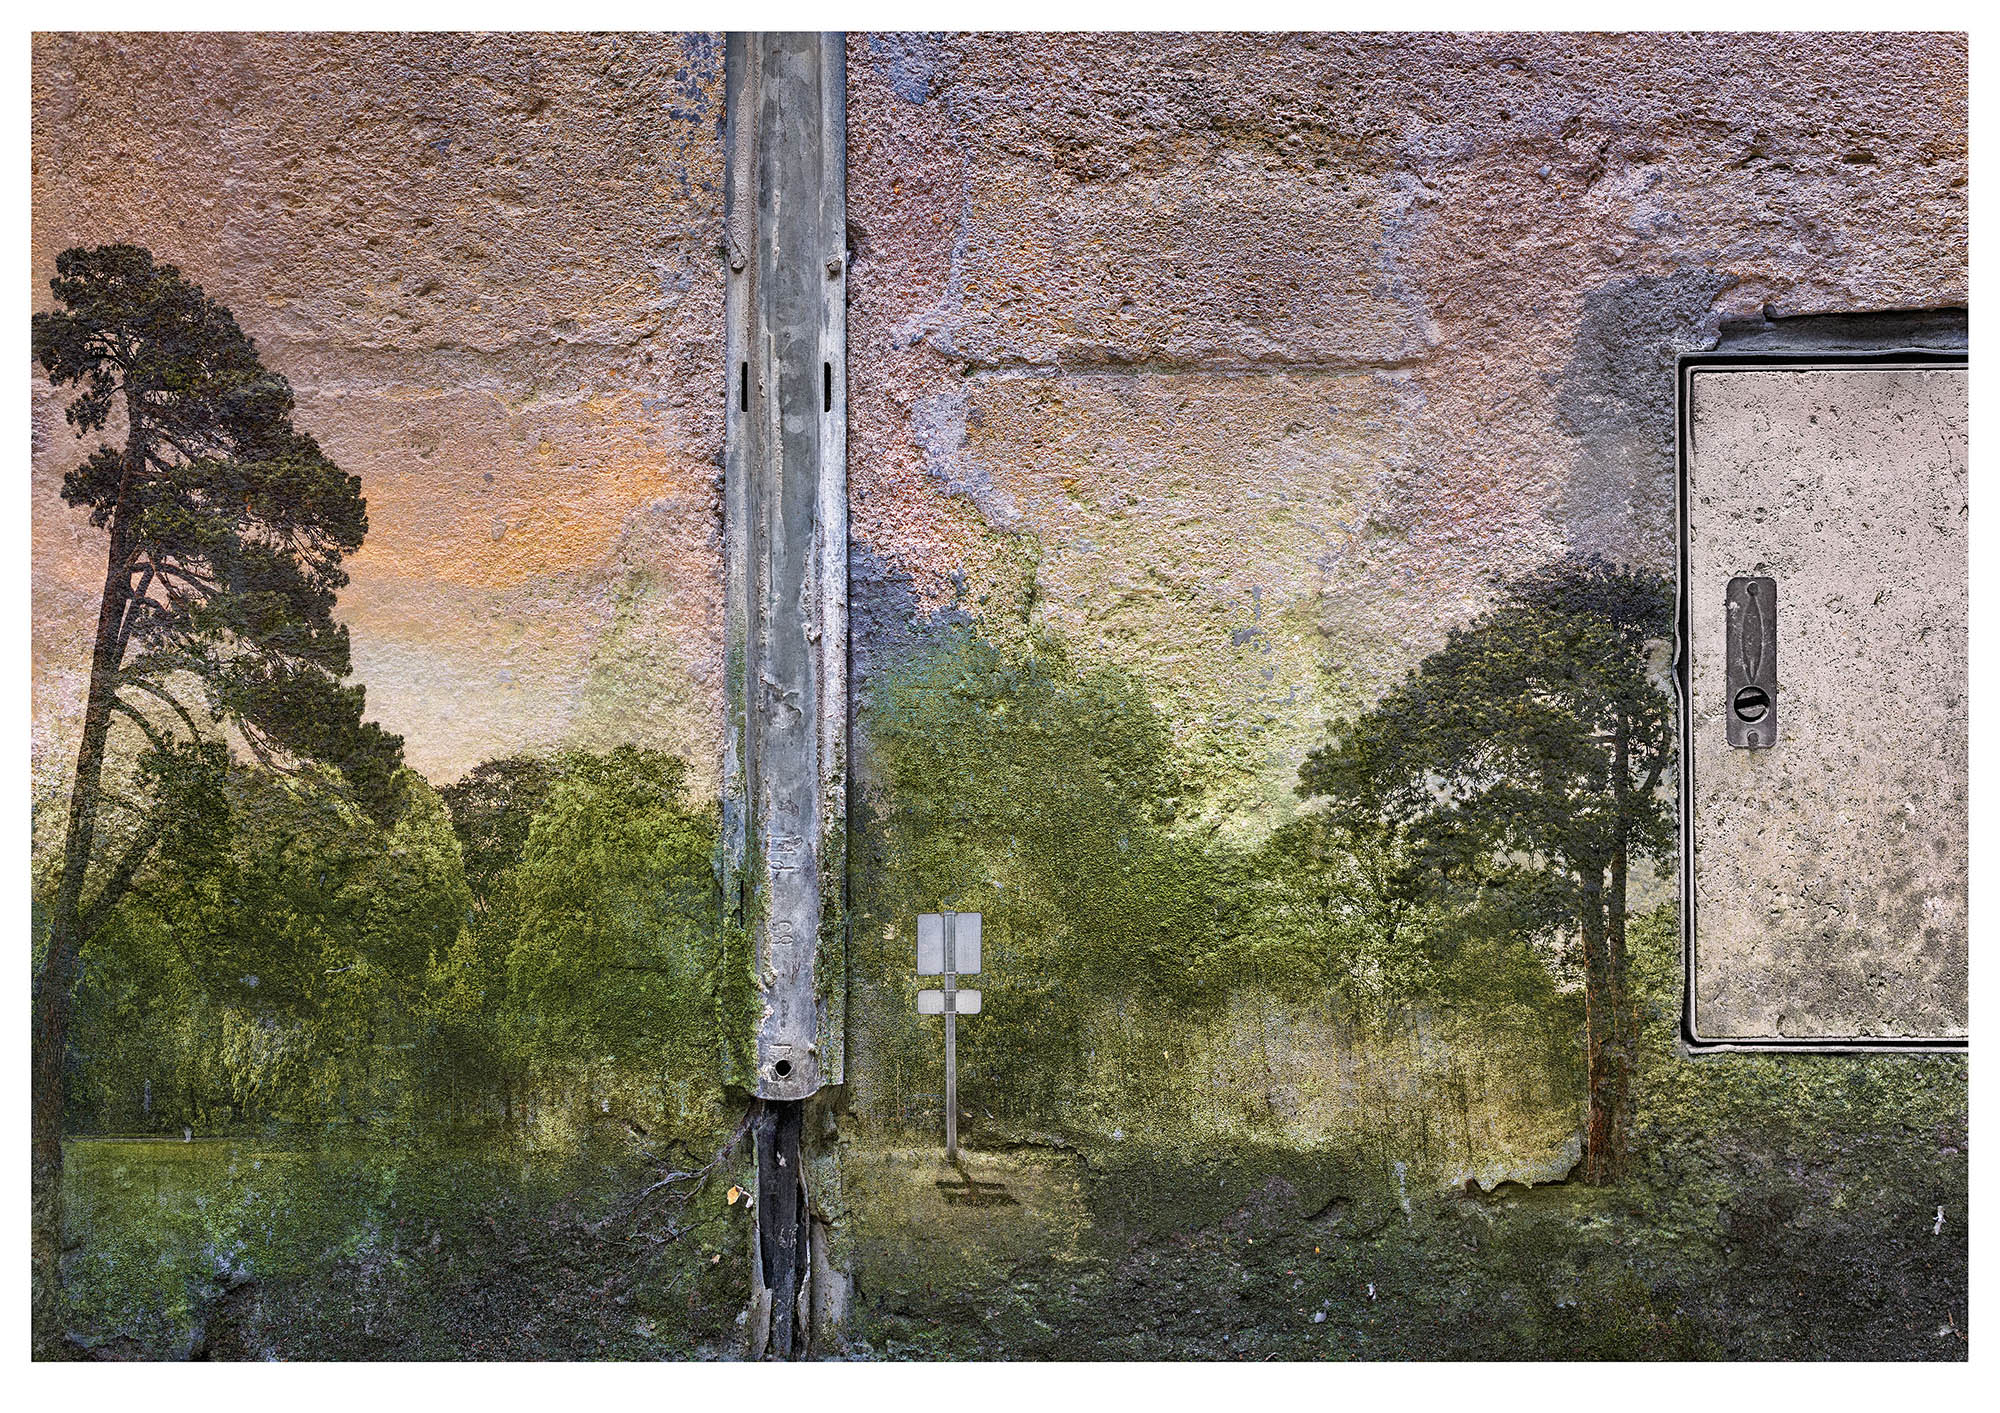 2nd. in series: woodland photograph overlaid on wall with old cabling in conduit.